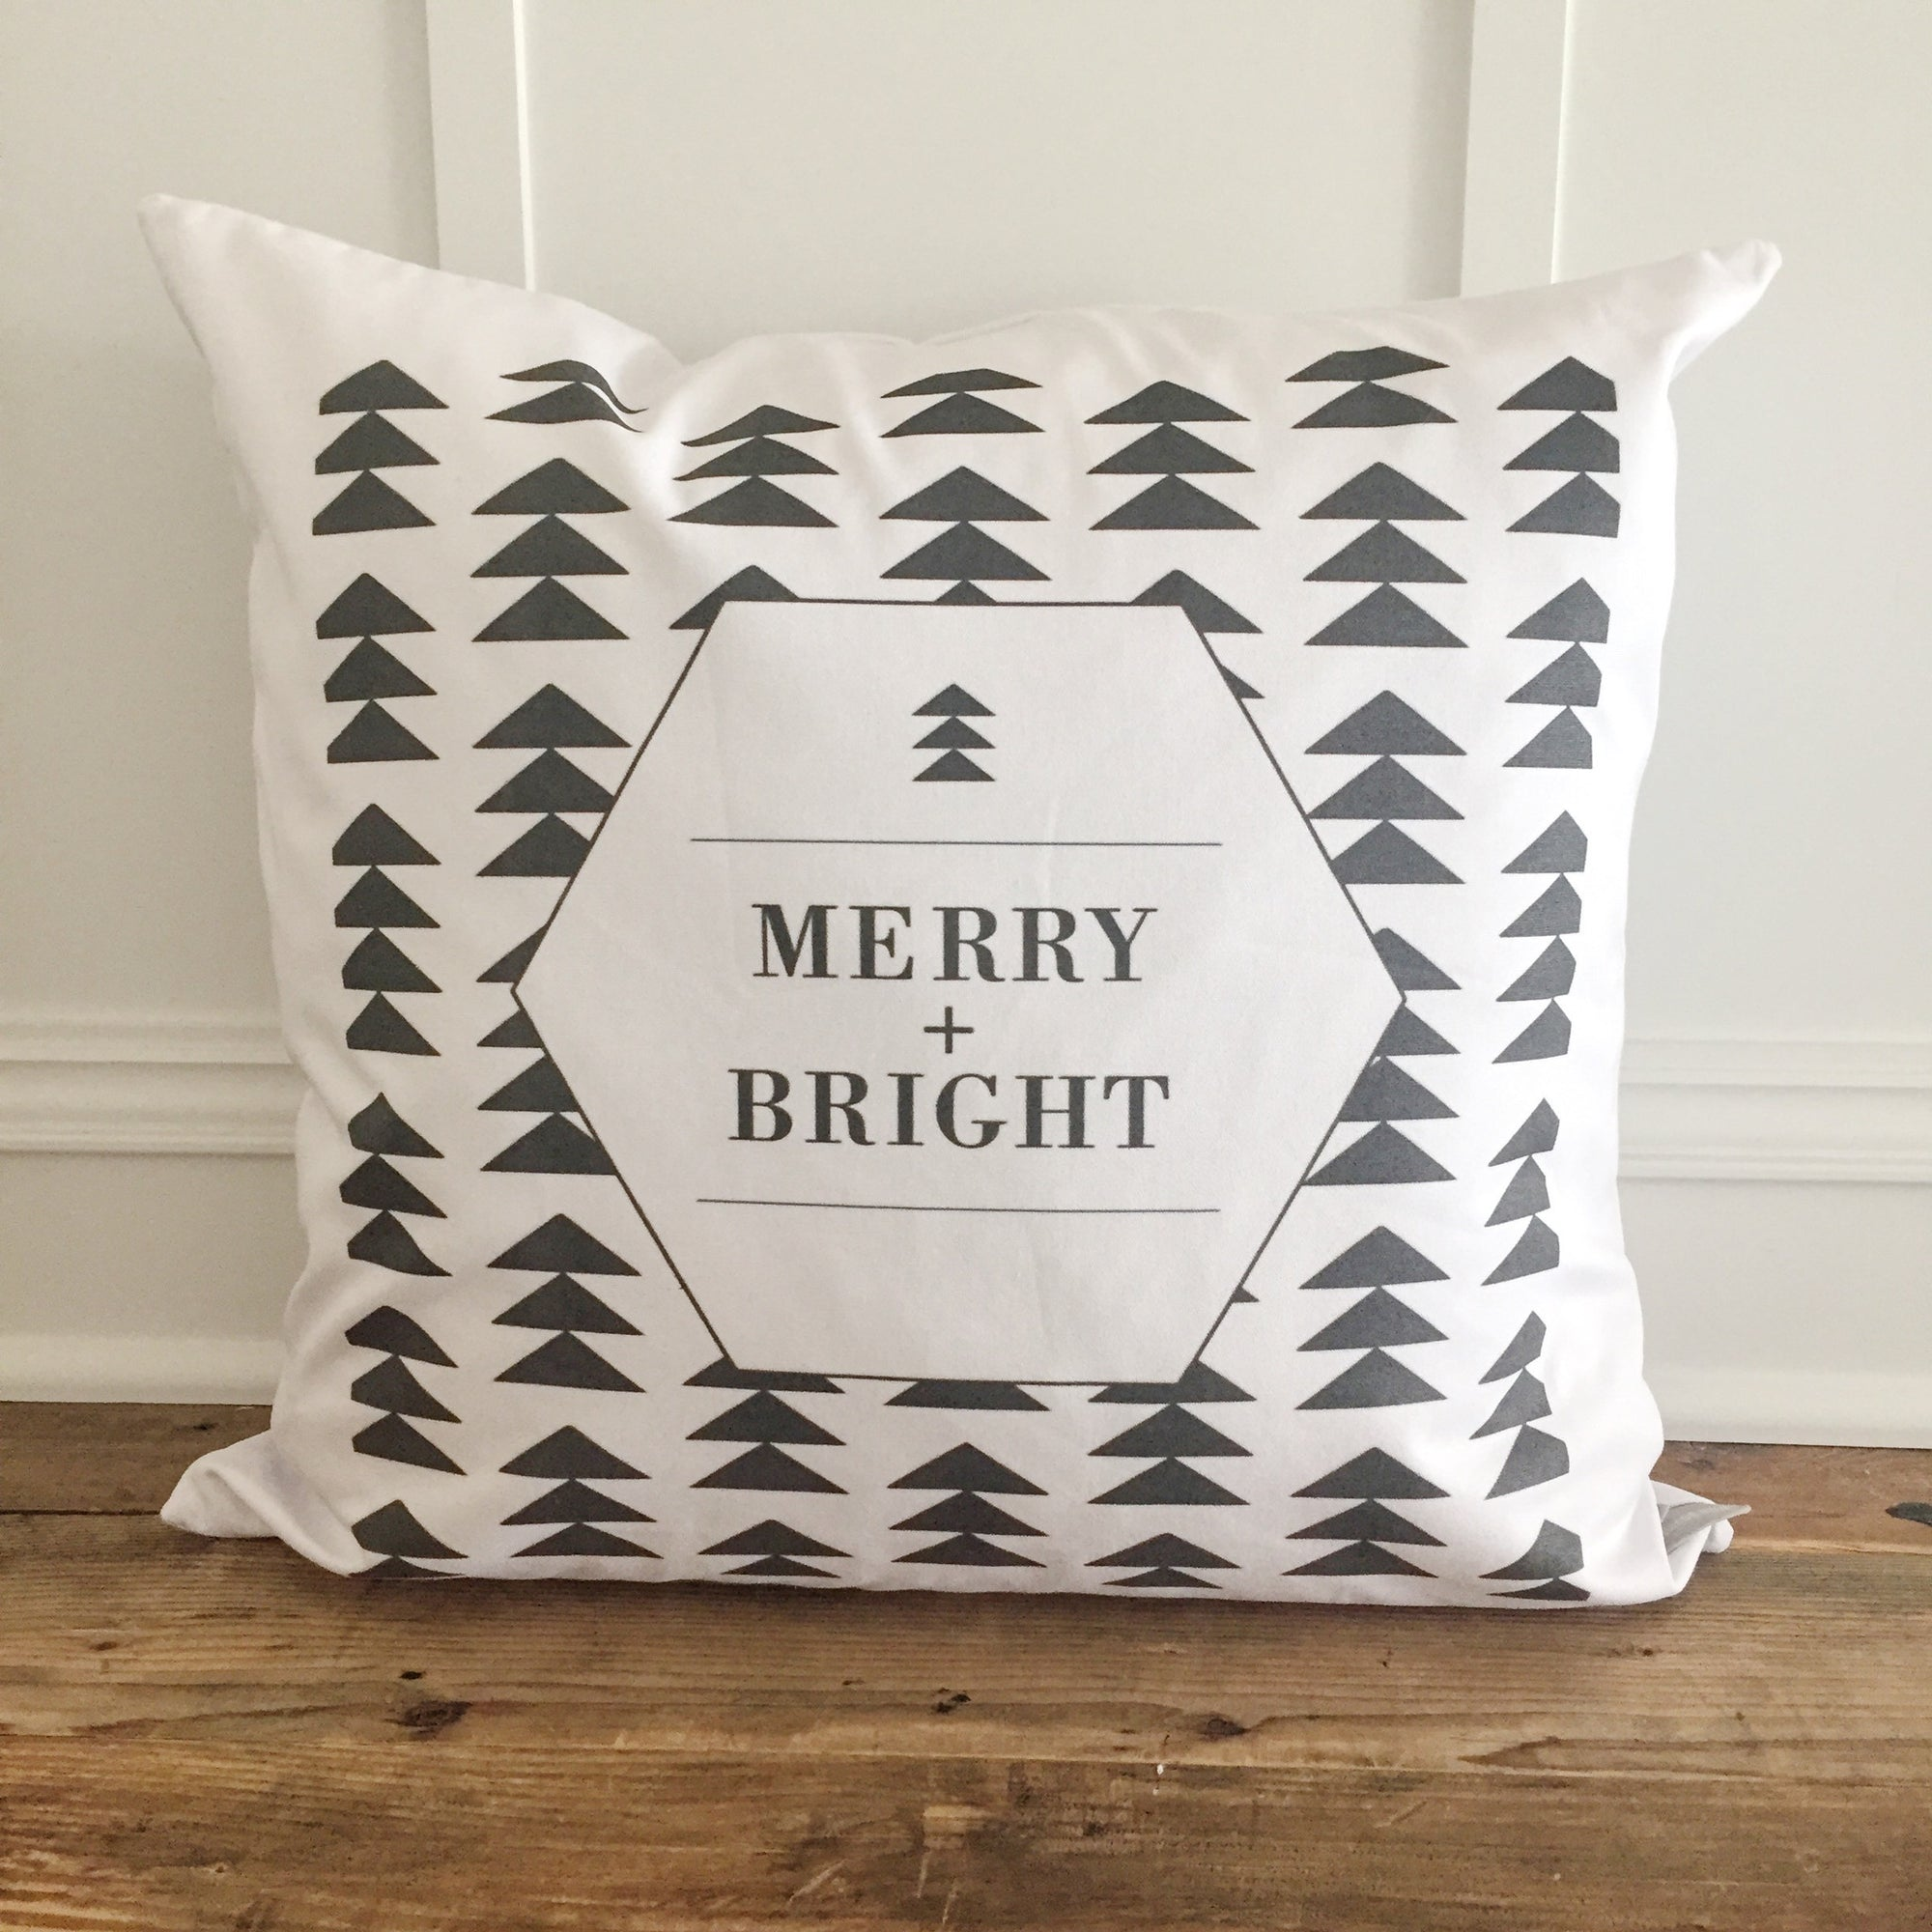 Merry + Bright Geometric Pillow Cover - Linen and Ivory